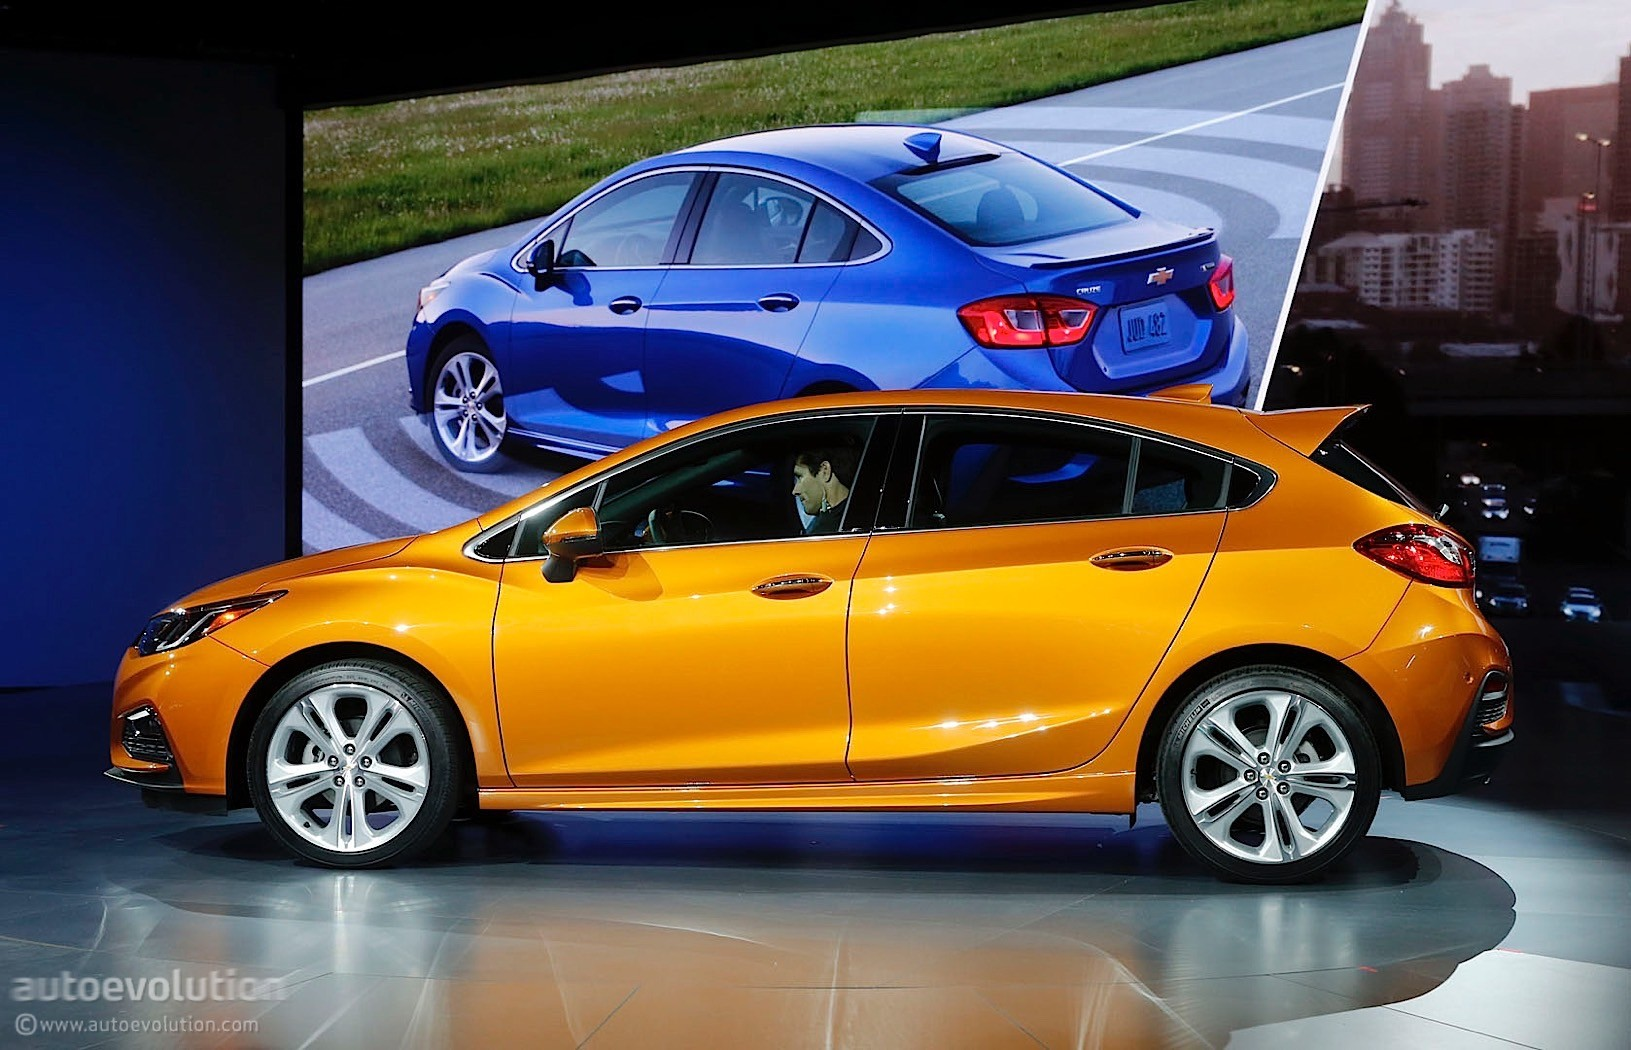 Used Chevy Equinox >> Here's the 2017 Chevrolet Cruze Hatch in Full Color - autoevolution